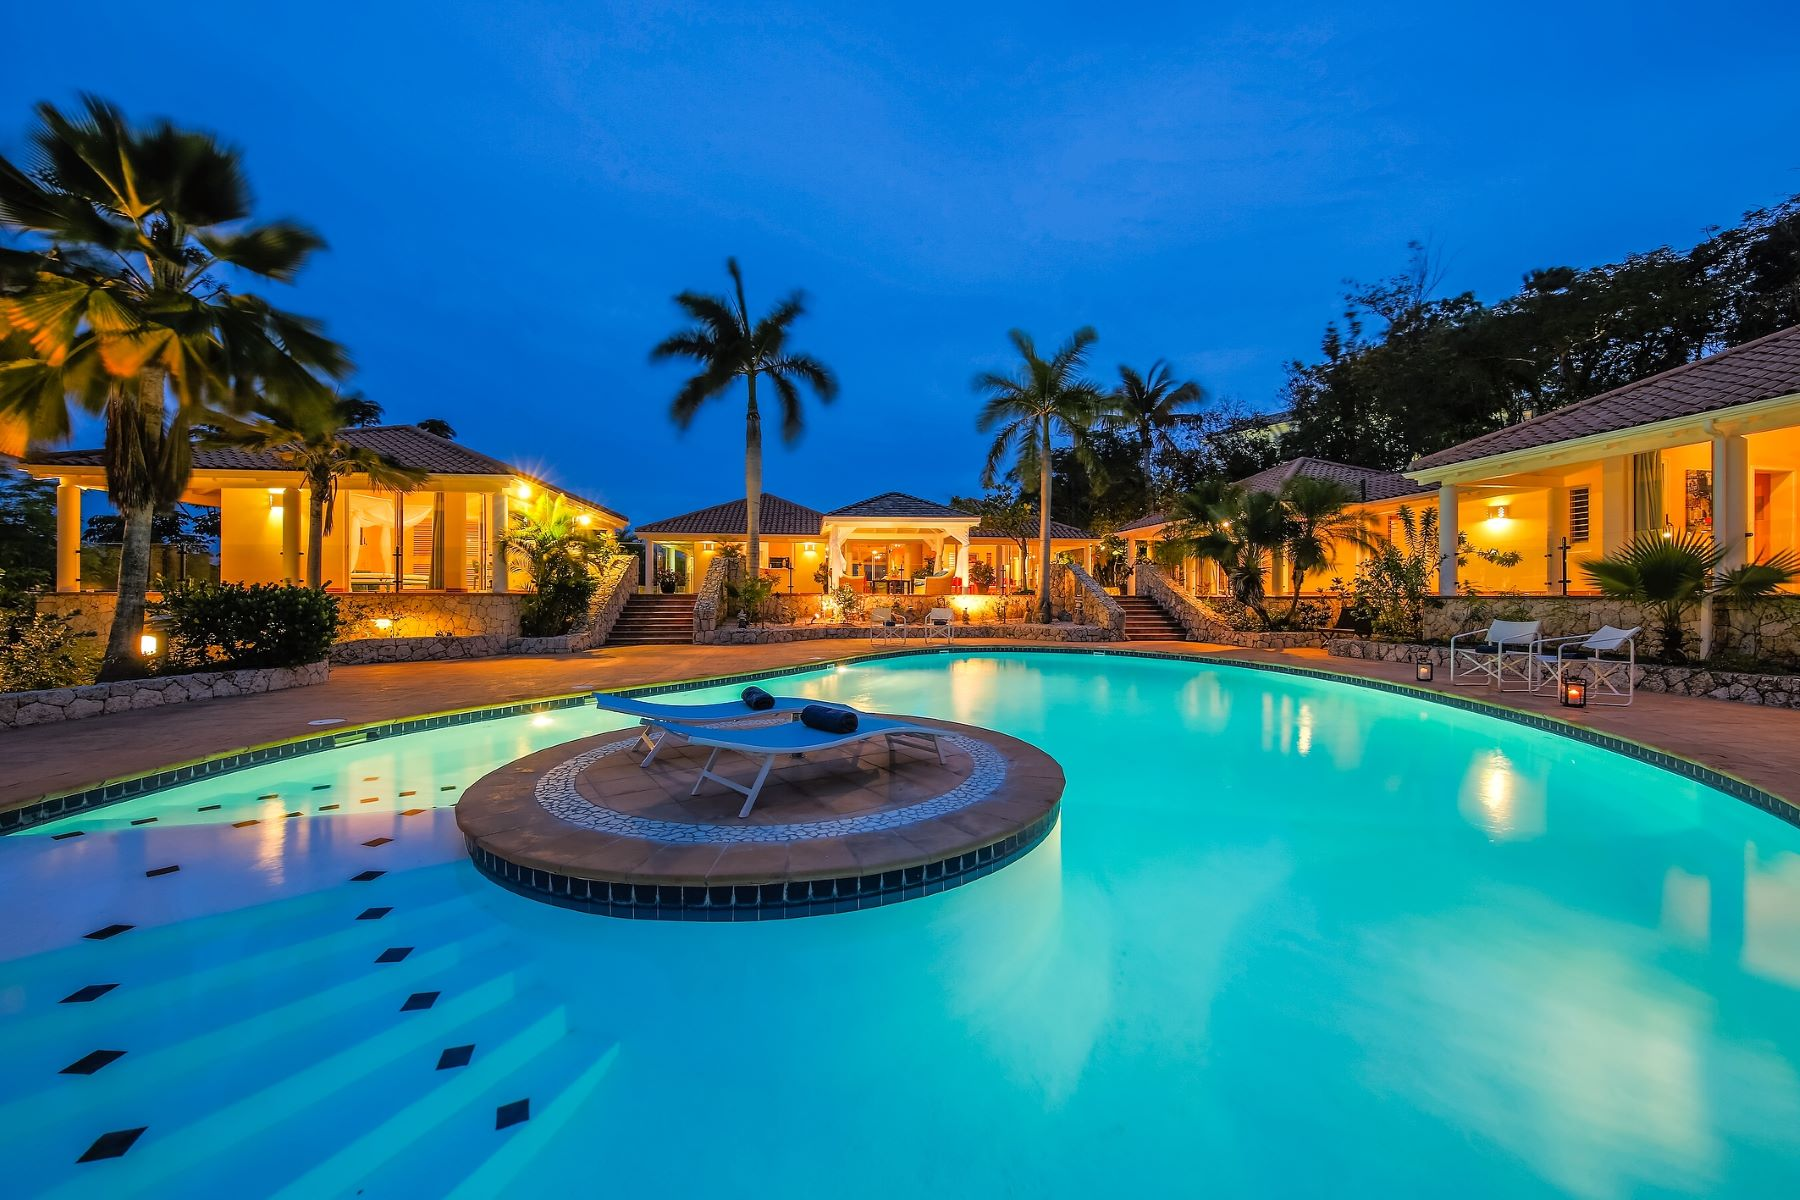 Single Family Home for Sale at Villa Dauphin Villa Dauphin Terres Basses, Cities In Saint Martin 97150 St. Martin